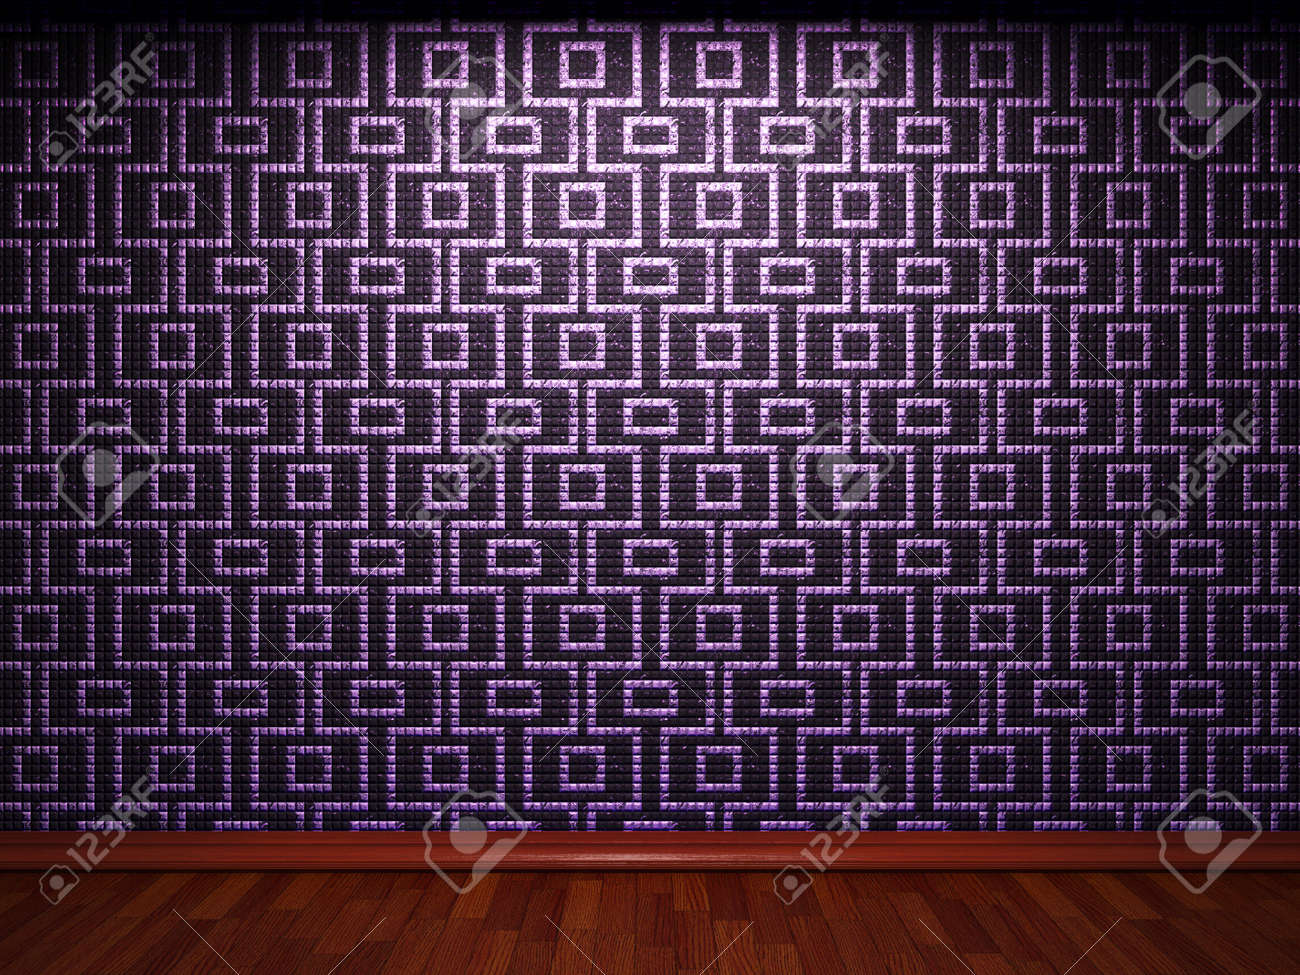 illuminated tile wall made in 3D graphics Stock Photo - 9366814